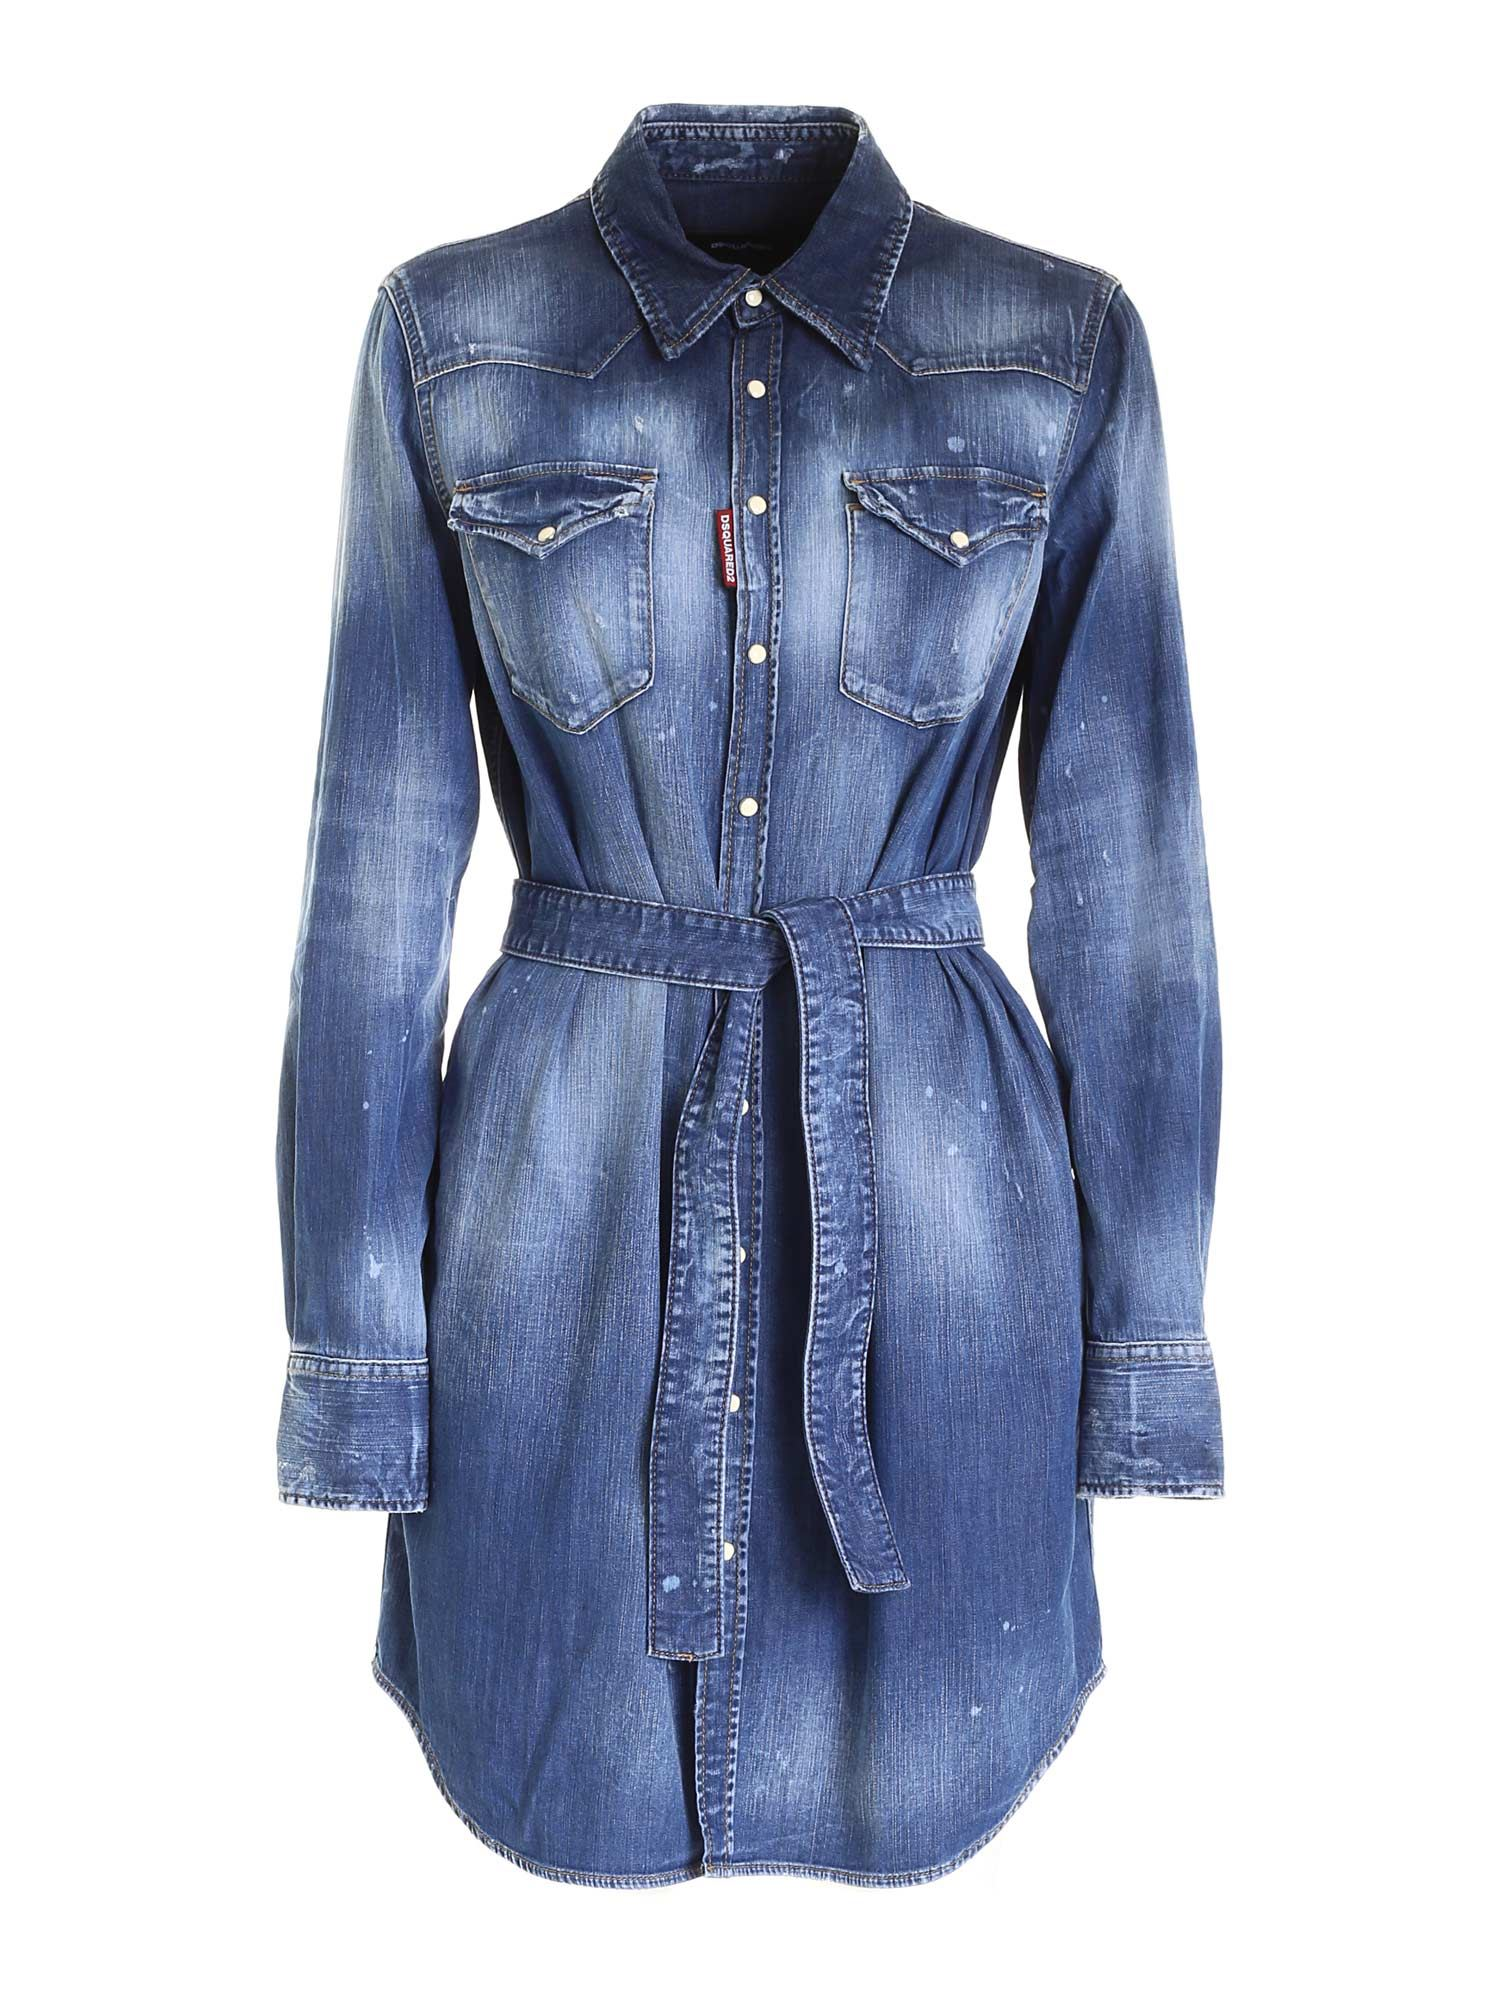 Dsquared2 BOYFRIEND SHIRT IN BLUE